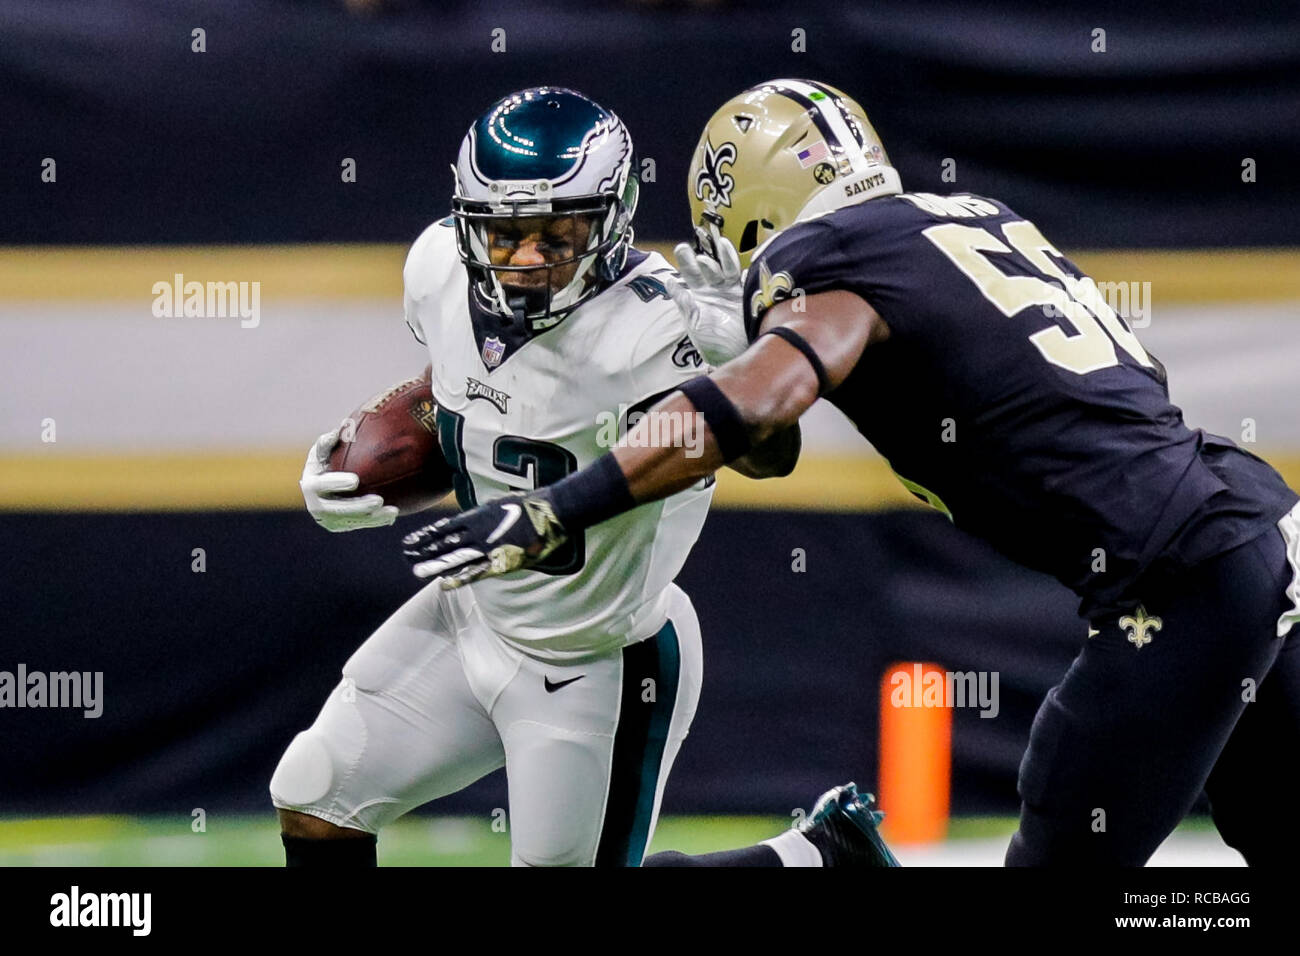 size 40 908c1 1fe42 New Orleans, LA, USA. 13th Jan, 2019. Philadelphia Eagles ...